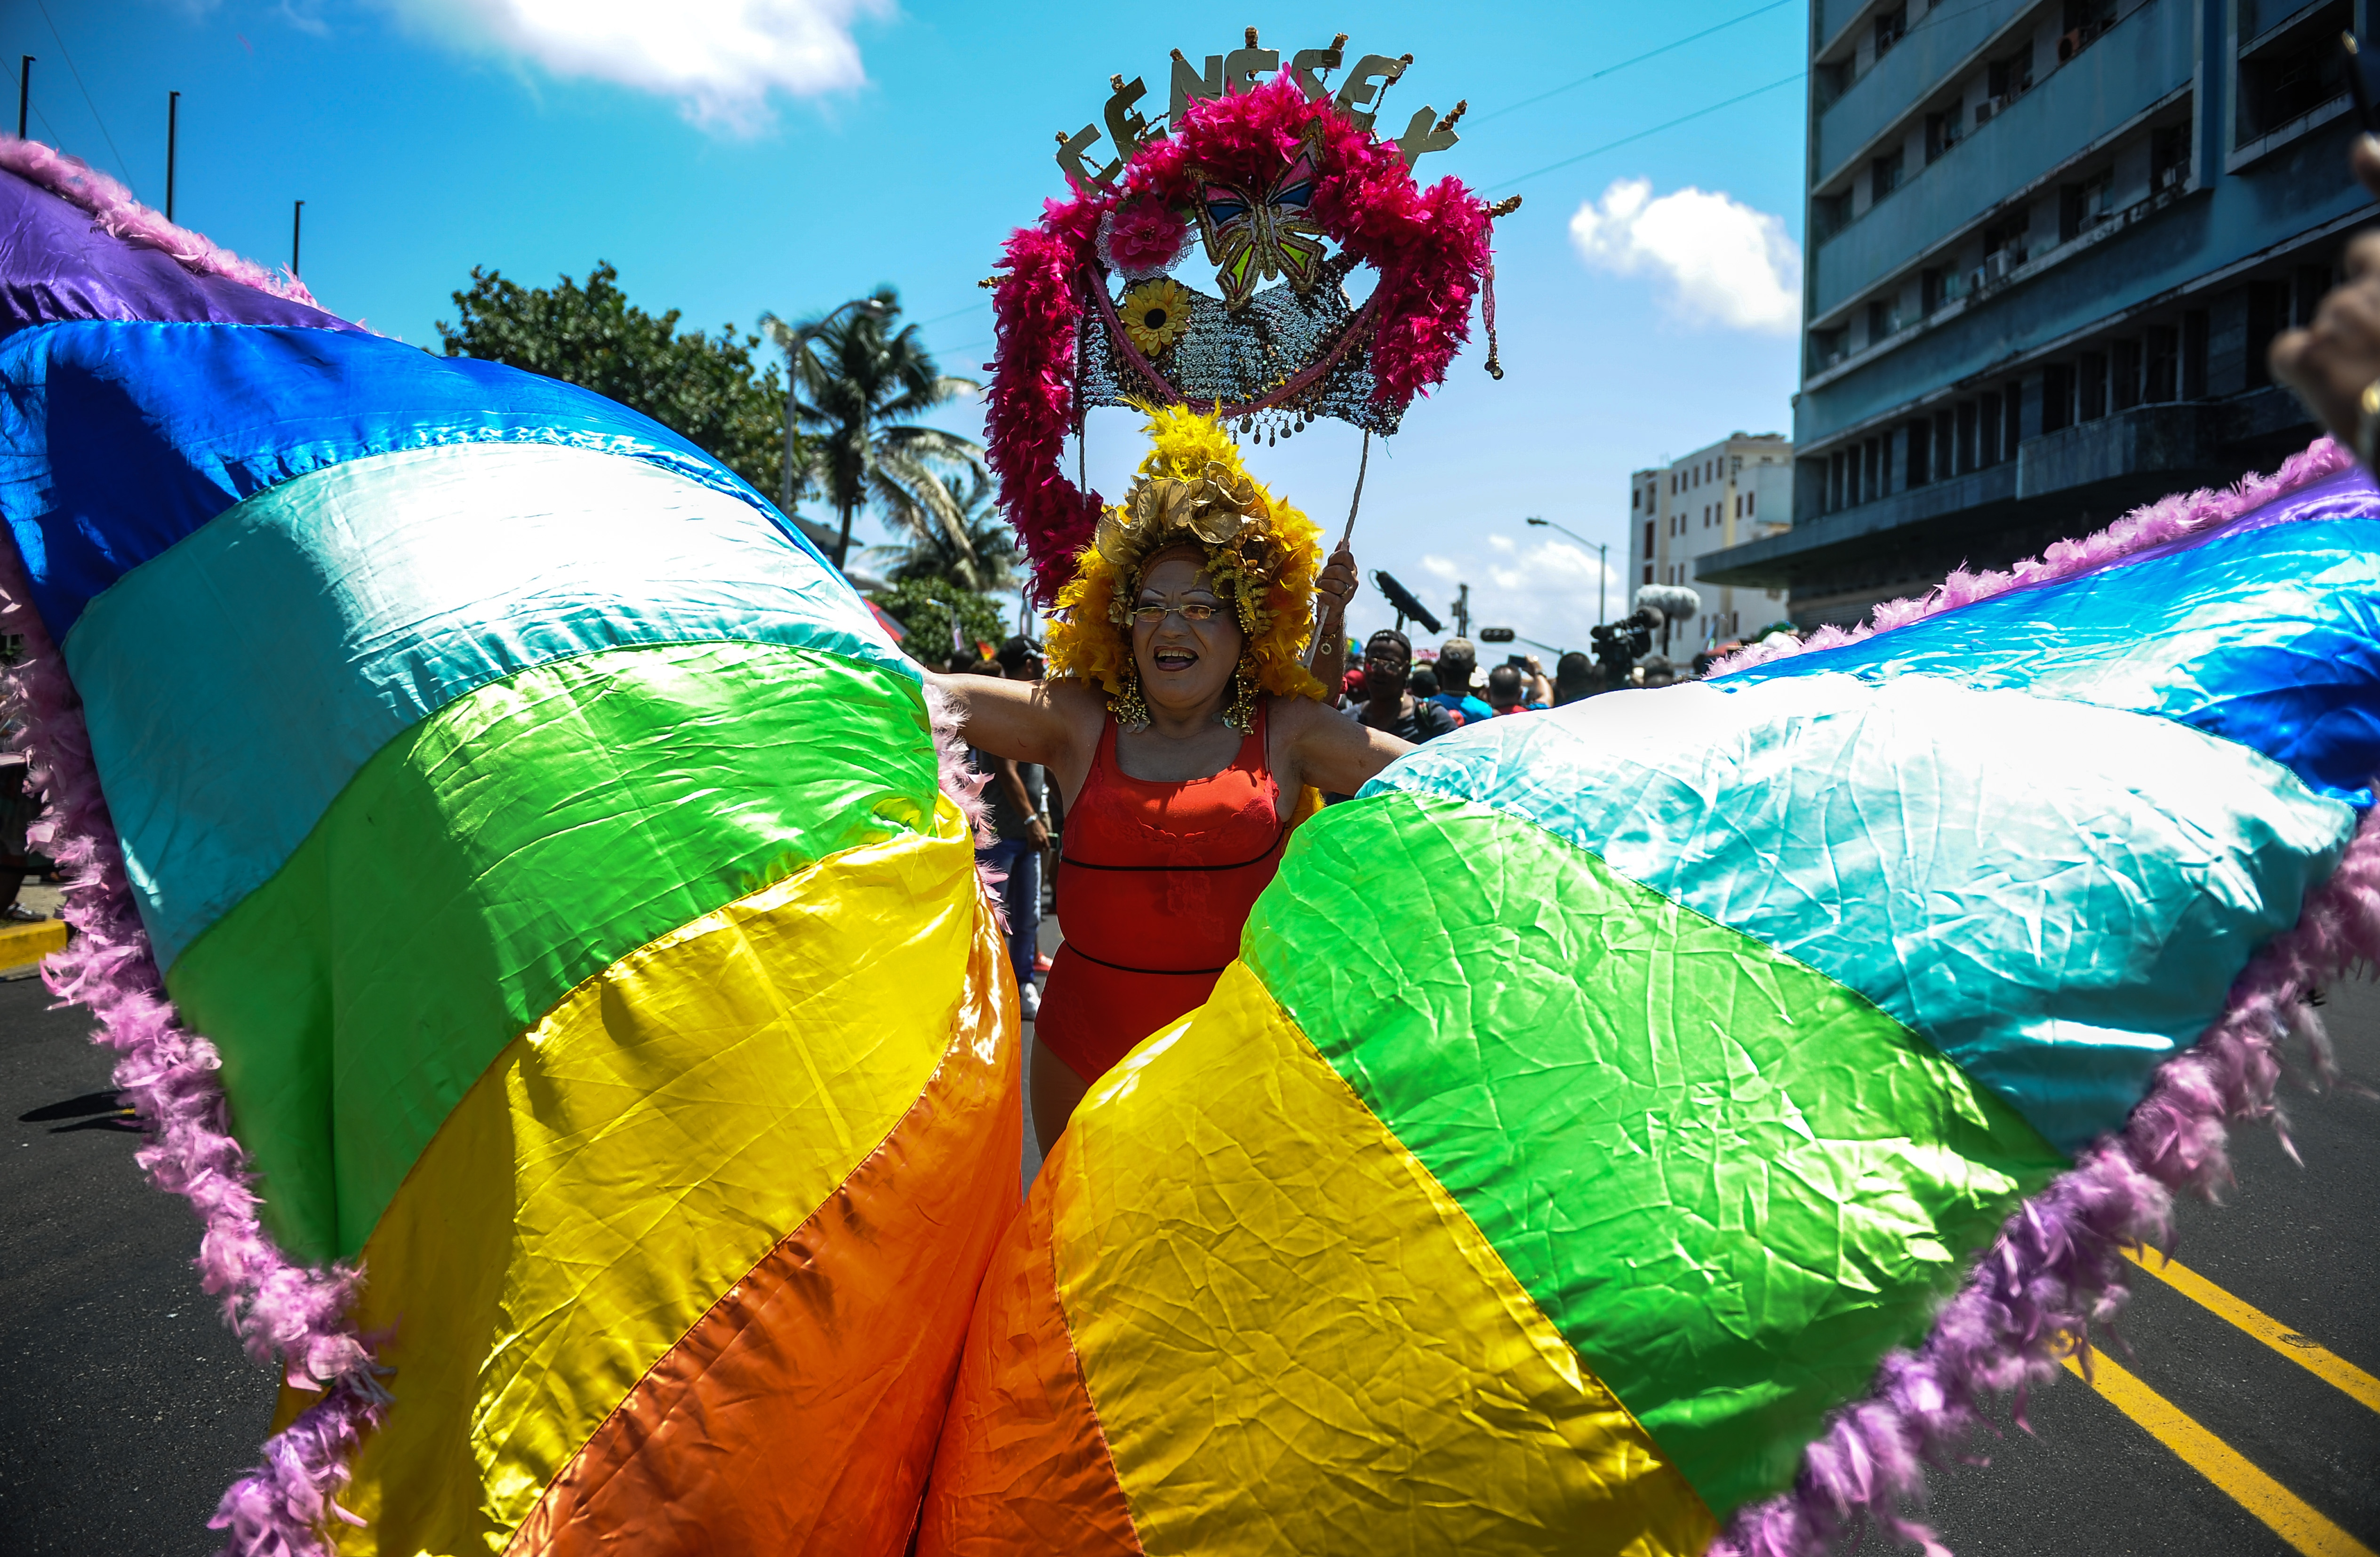 A member of the gay and lesbian community participates in a march against homophobia on May 14, 2016 in Havana. / AFP PHOTO / YAMIL LAGE